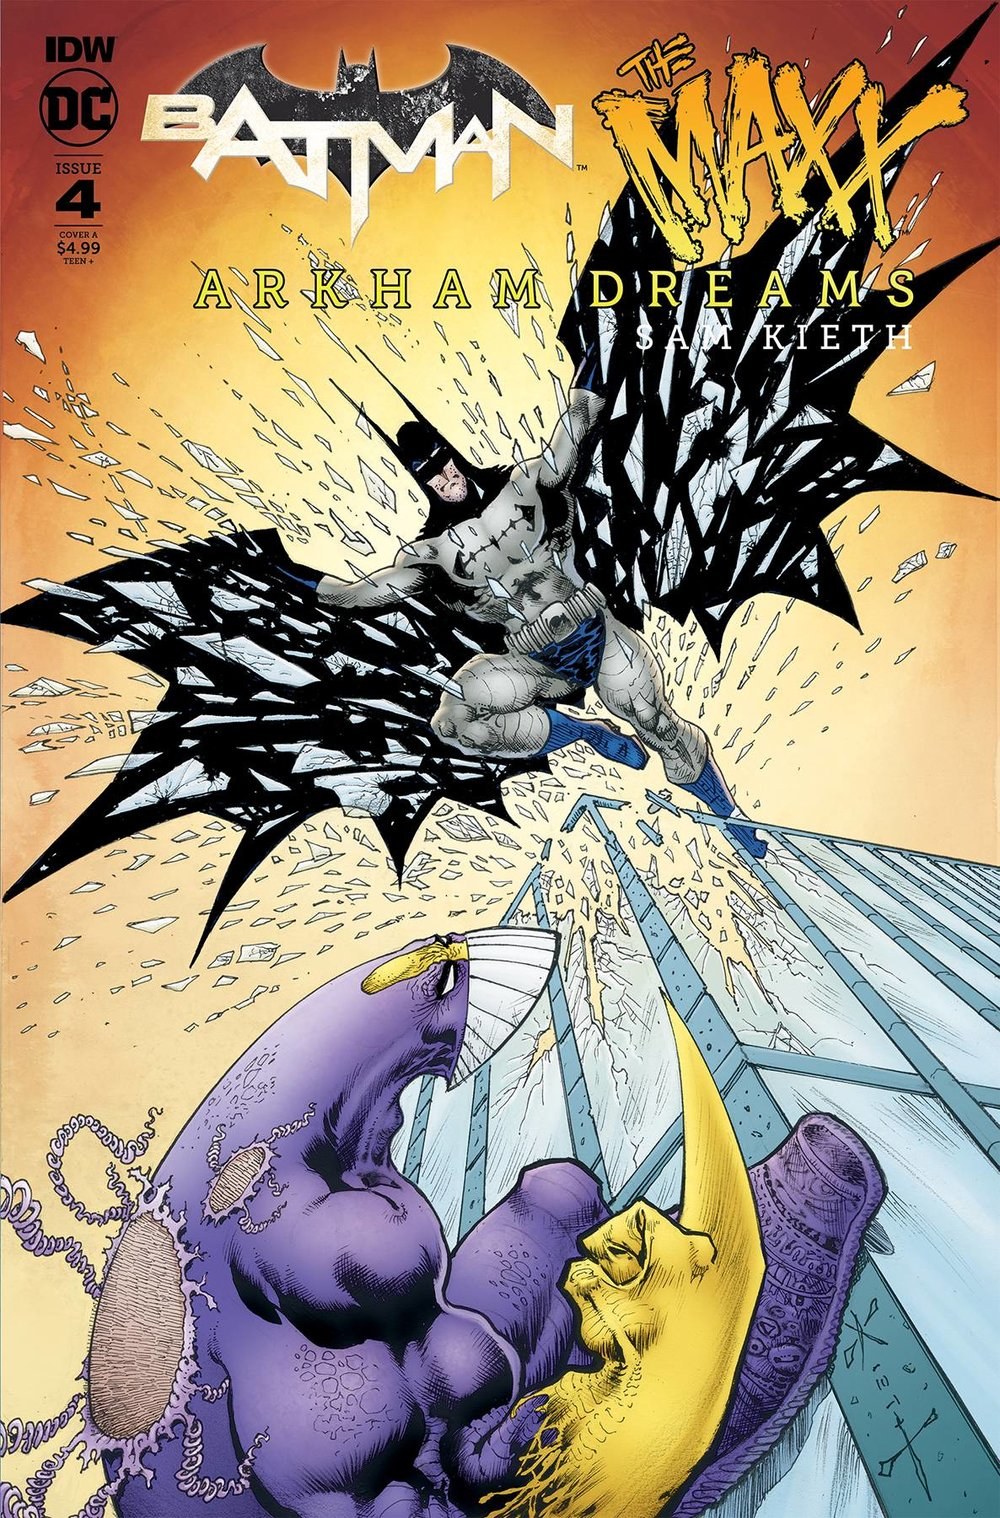 BATMAN THE MAXX ARKHAM DREAMS of 5 CVR A KIETH.jpg